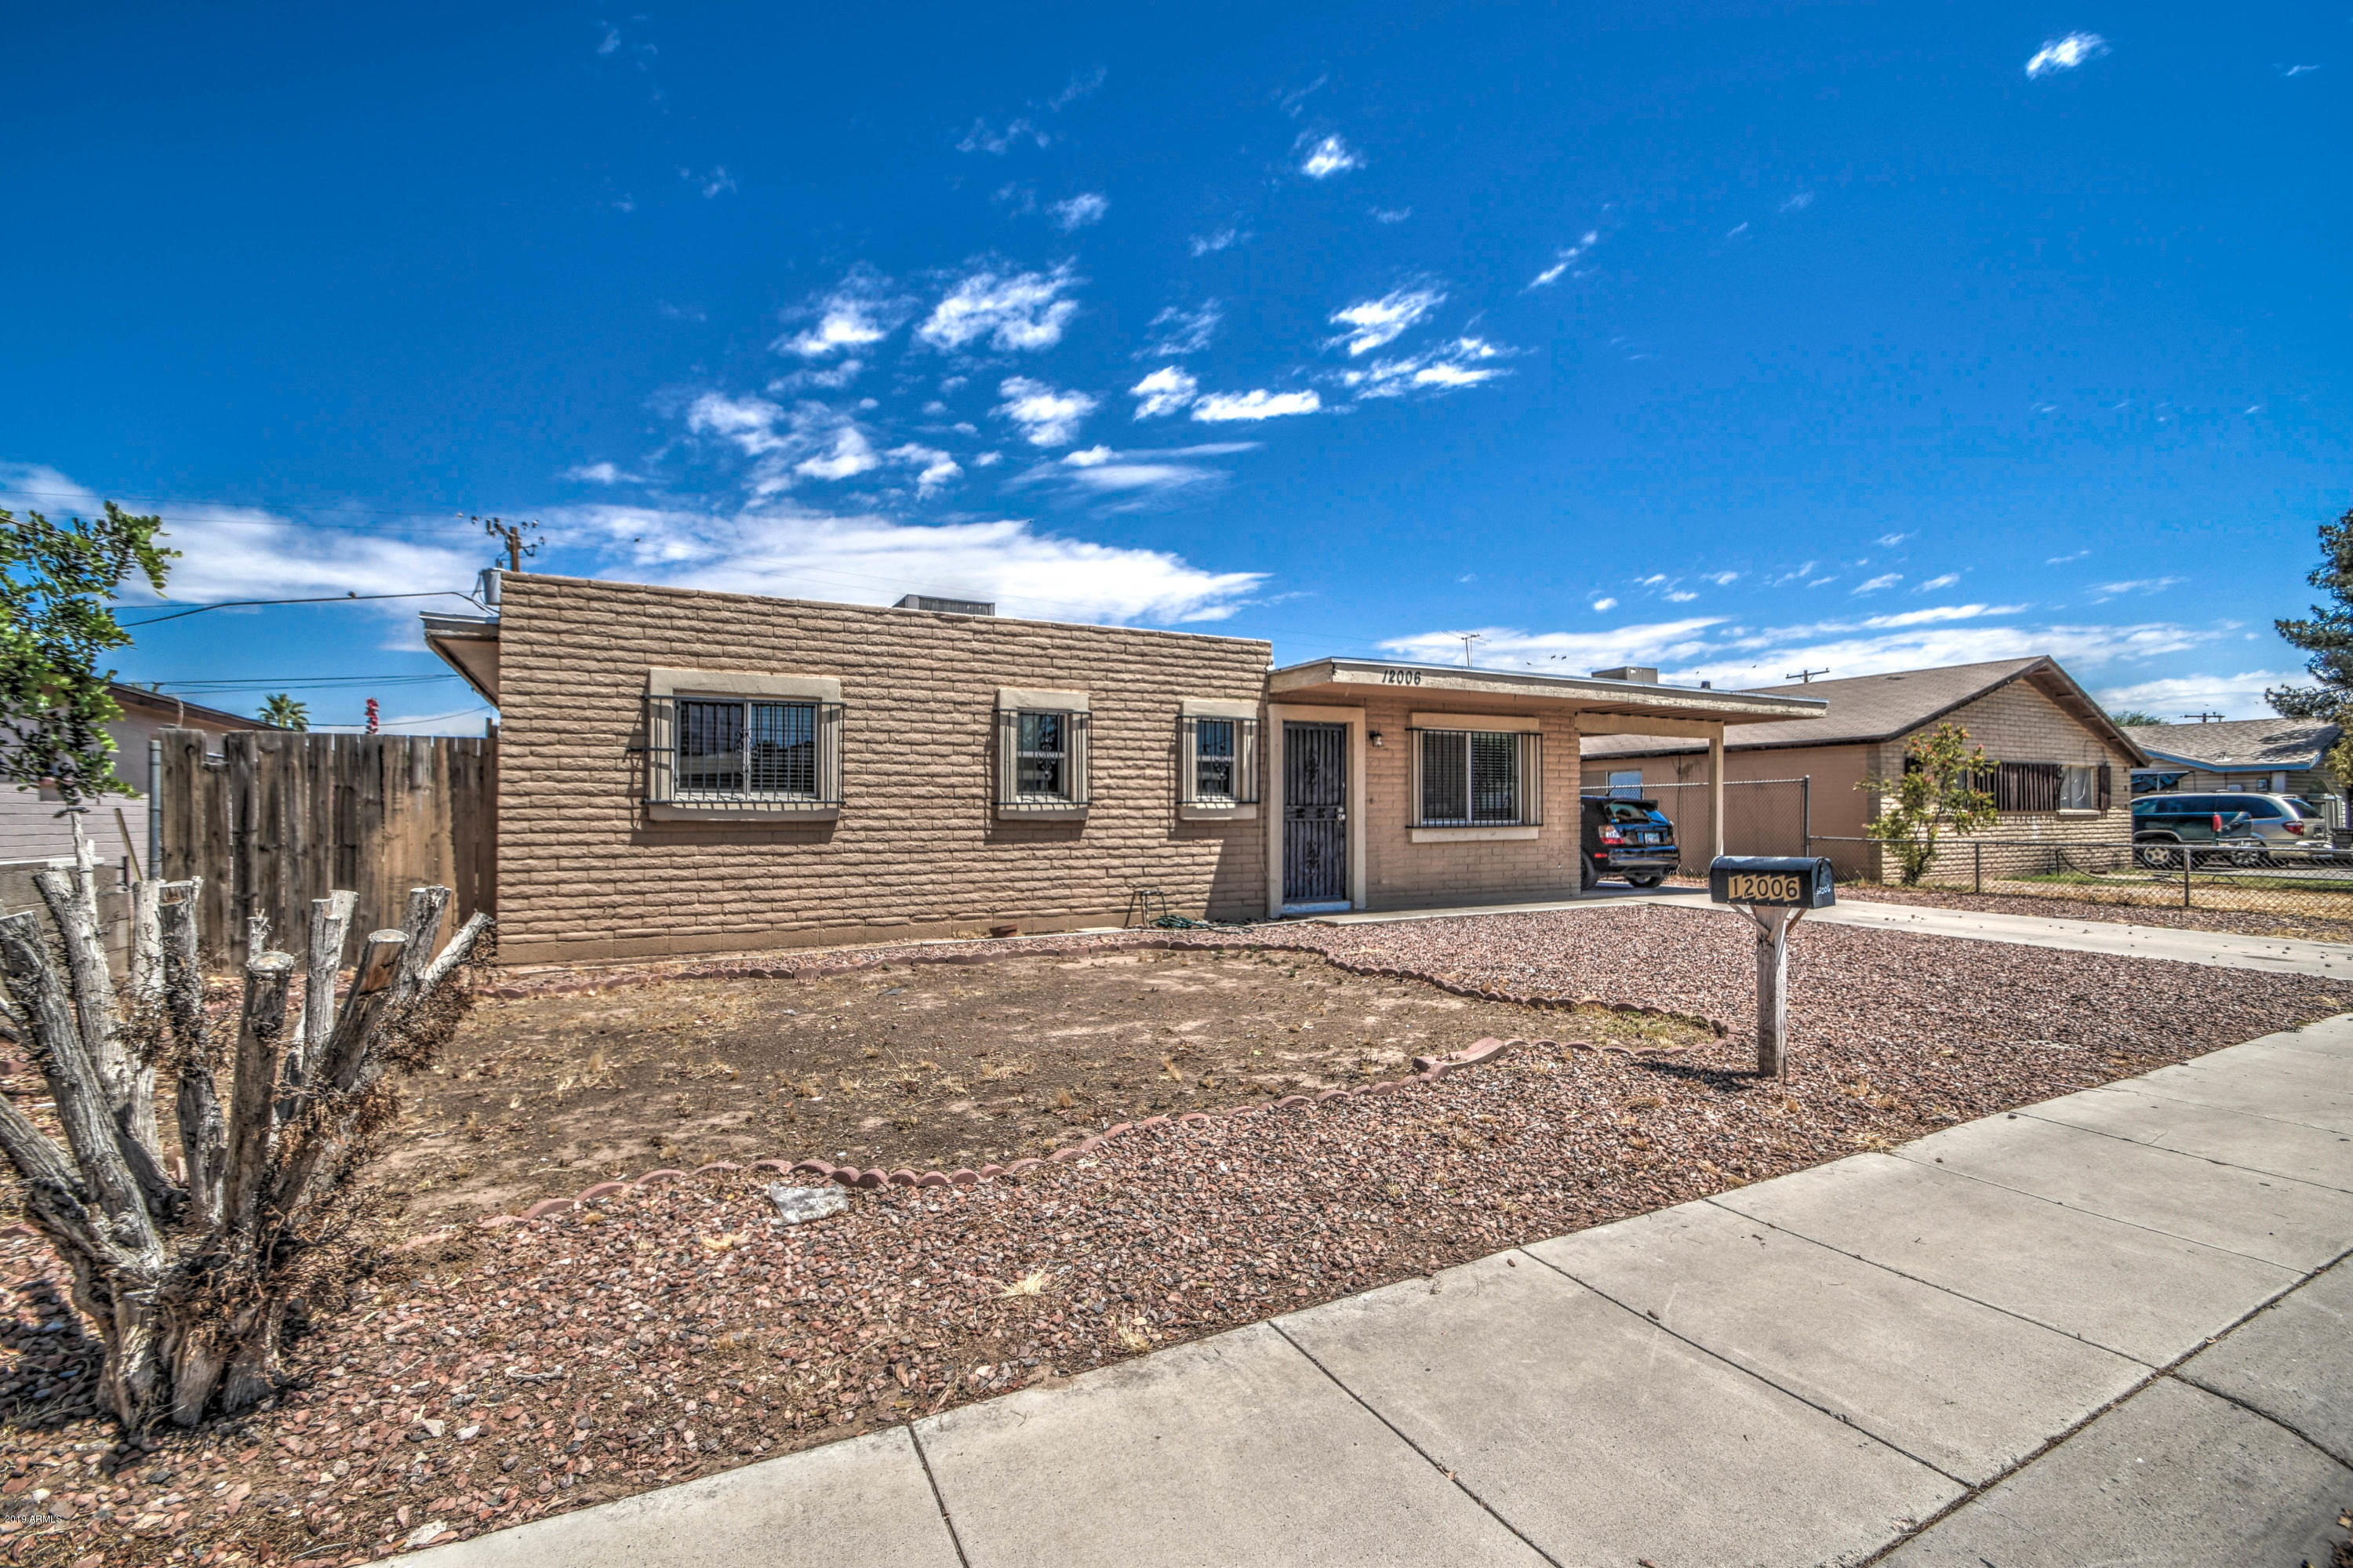 Photo of 12006 RIVER Road, El Mirage, AZ 85335